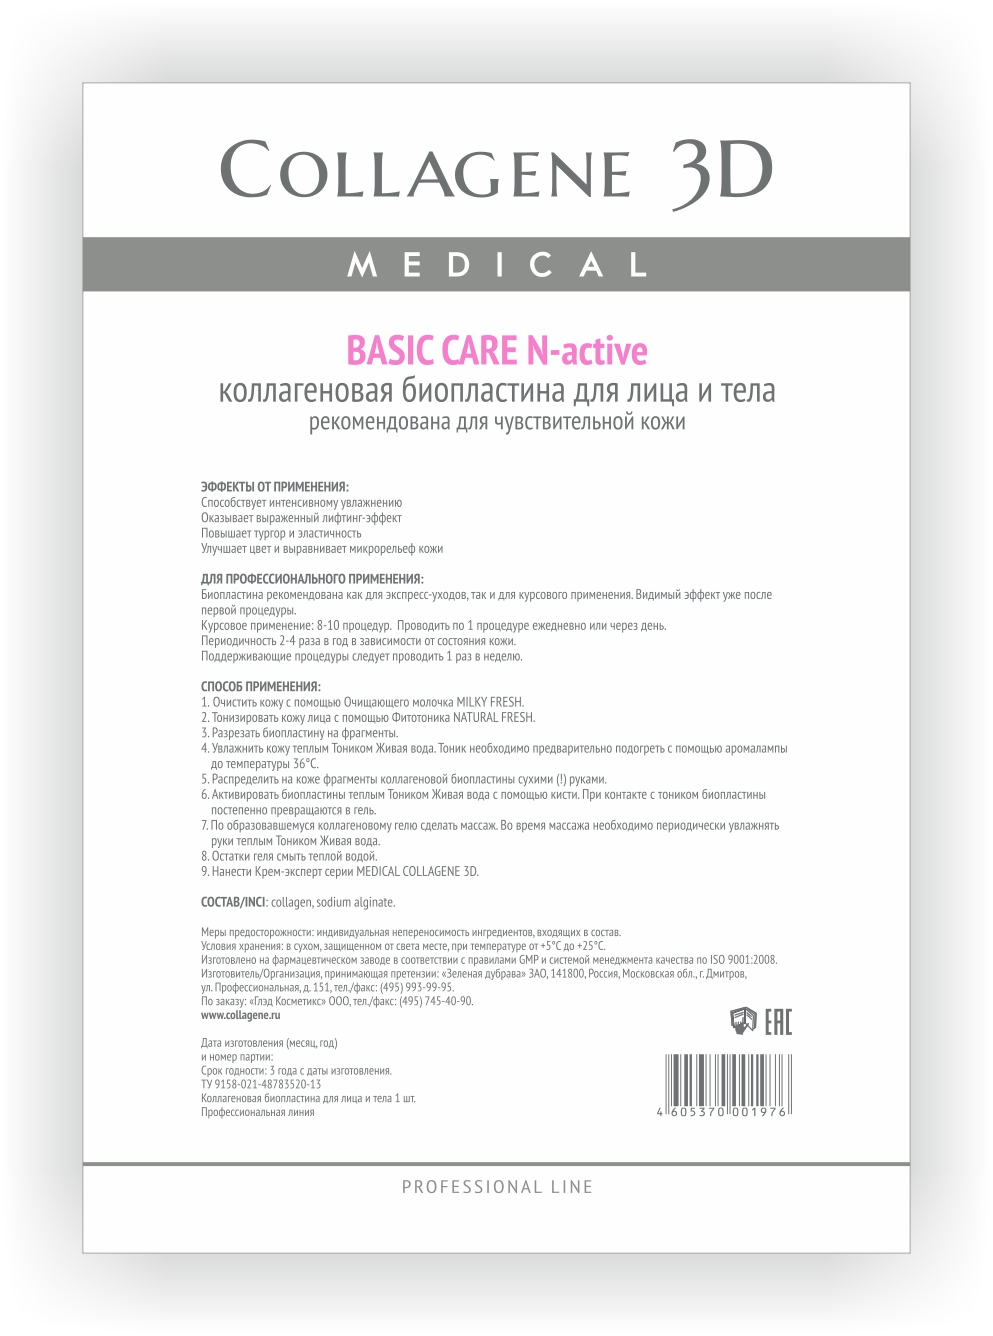 MEDICAL COLLAGENE 3D Биопластины коллагеновые чистый коллаген для лица и тела Basic Care А4